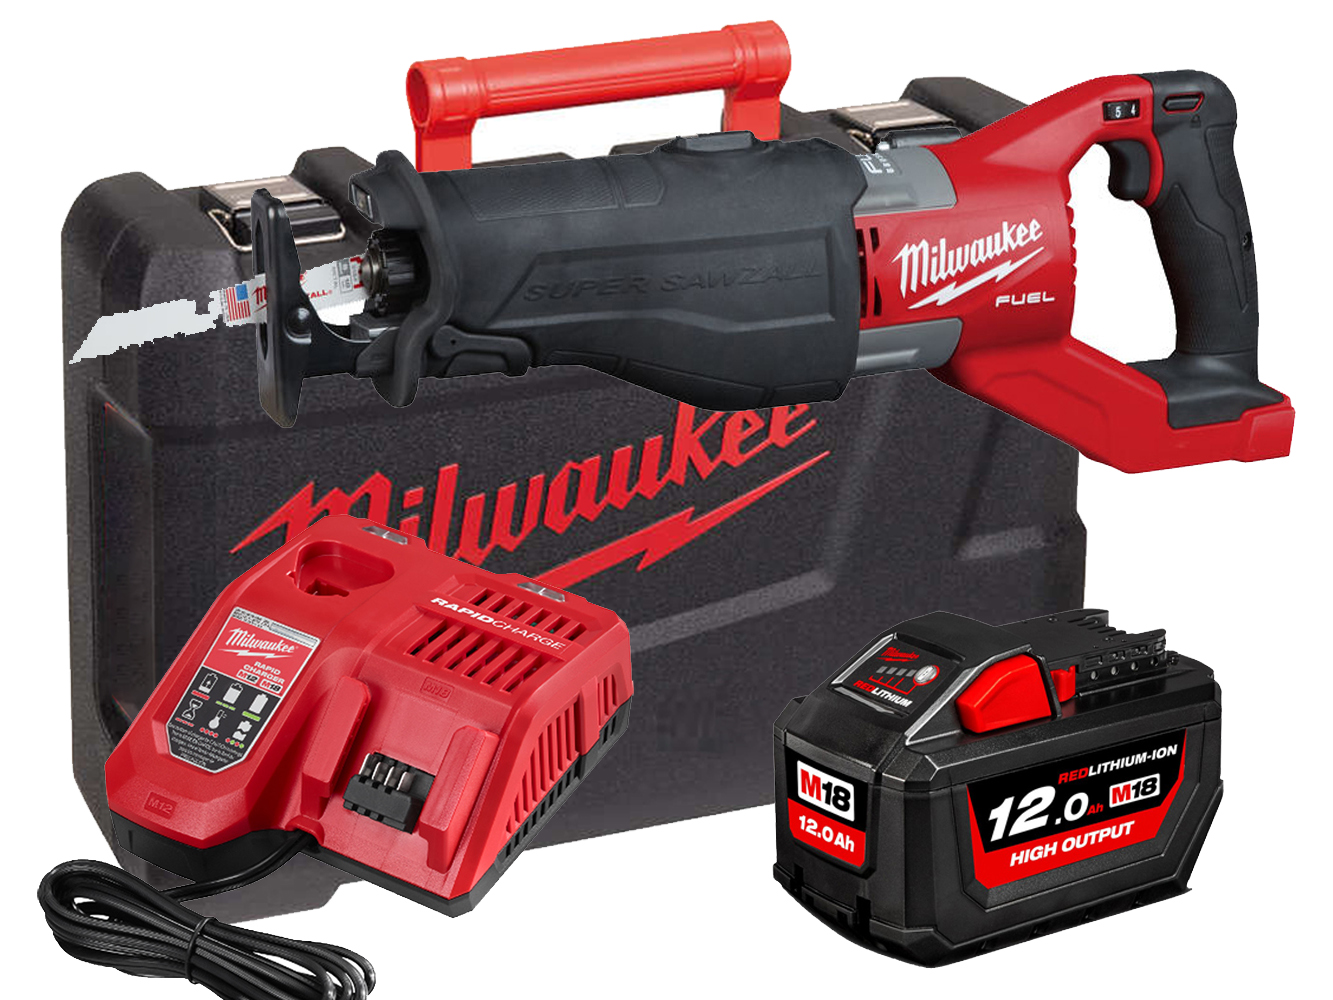 Milwaukee M18FSX 18V Fuel Super Sawzall (Reciprocating Saw) - 12.0Ah Pack